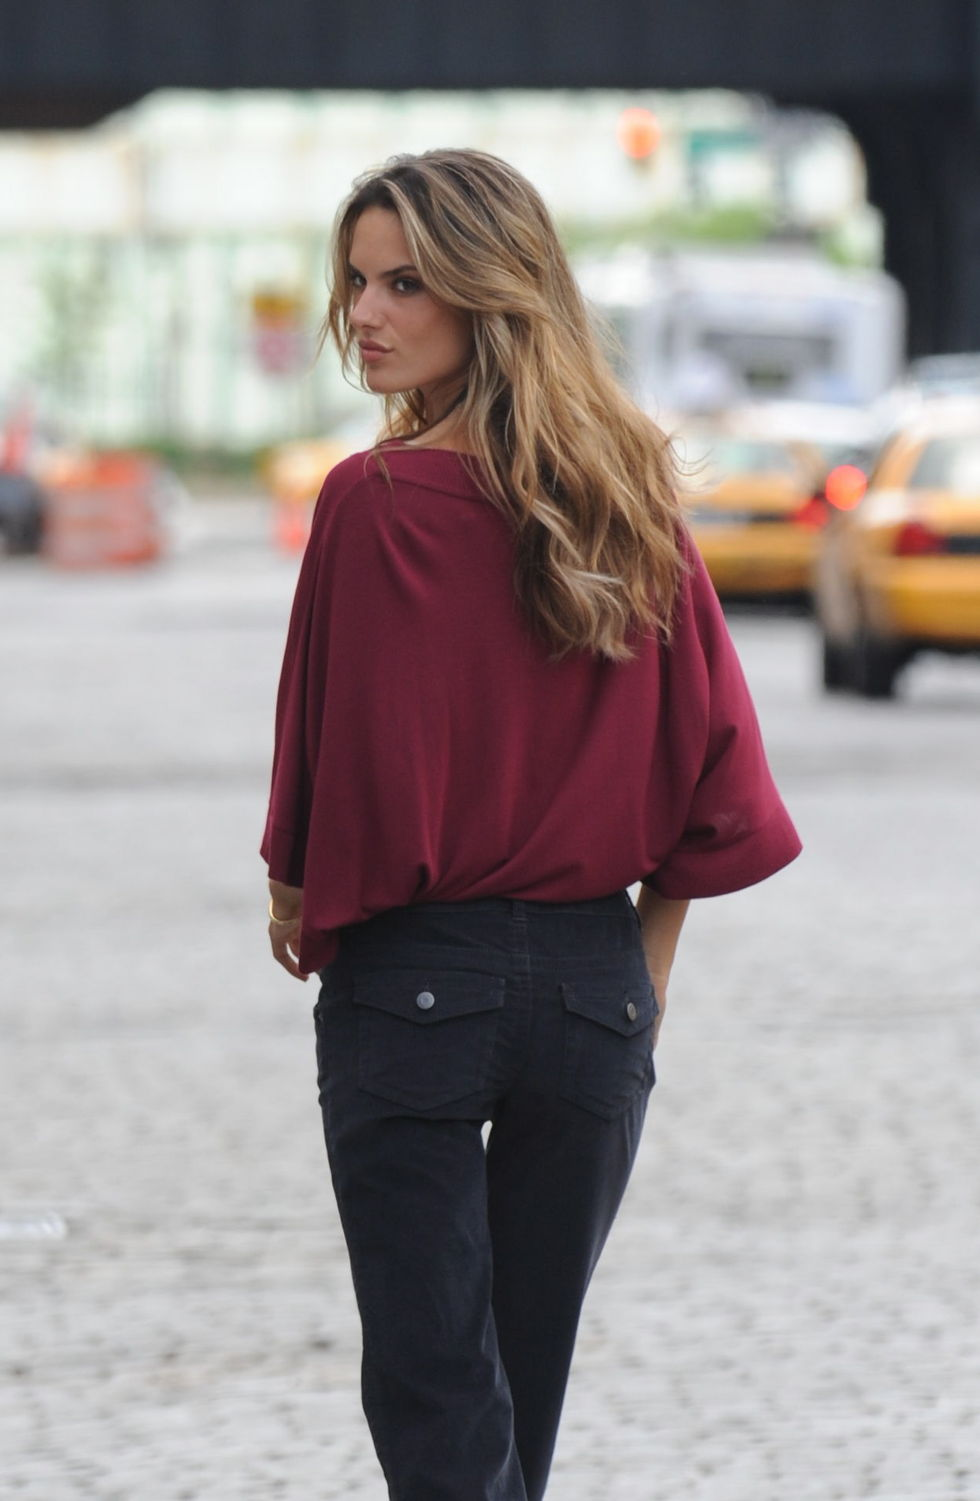 alessandra-ambrosio-in-a-photoshoot-in-new-york-01